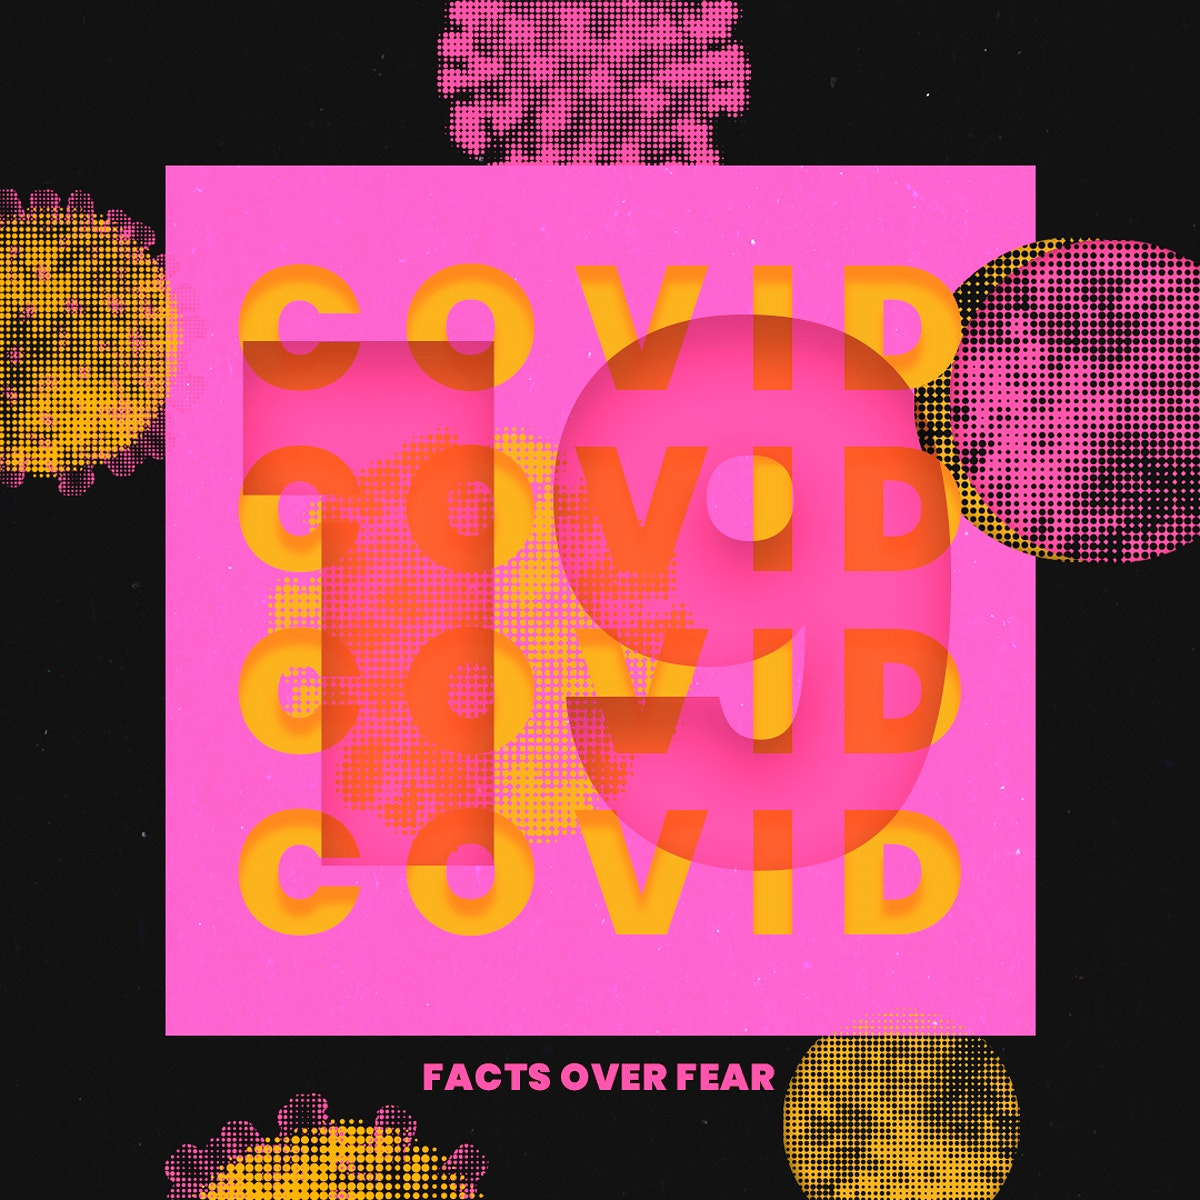 Facts over fear COVID-19 psd mockup social ad with pink and yellow halftone coronavirus illustration